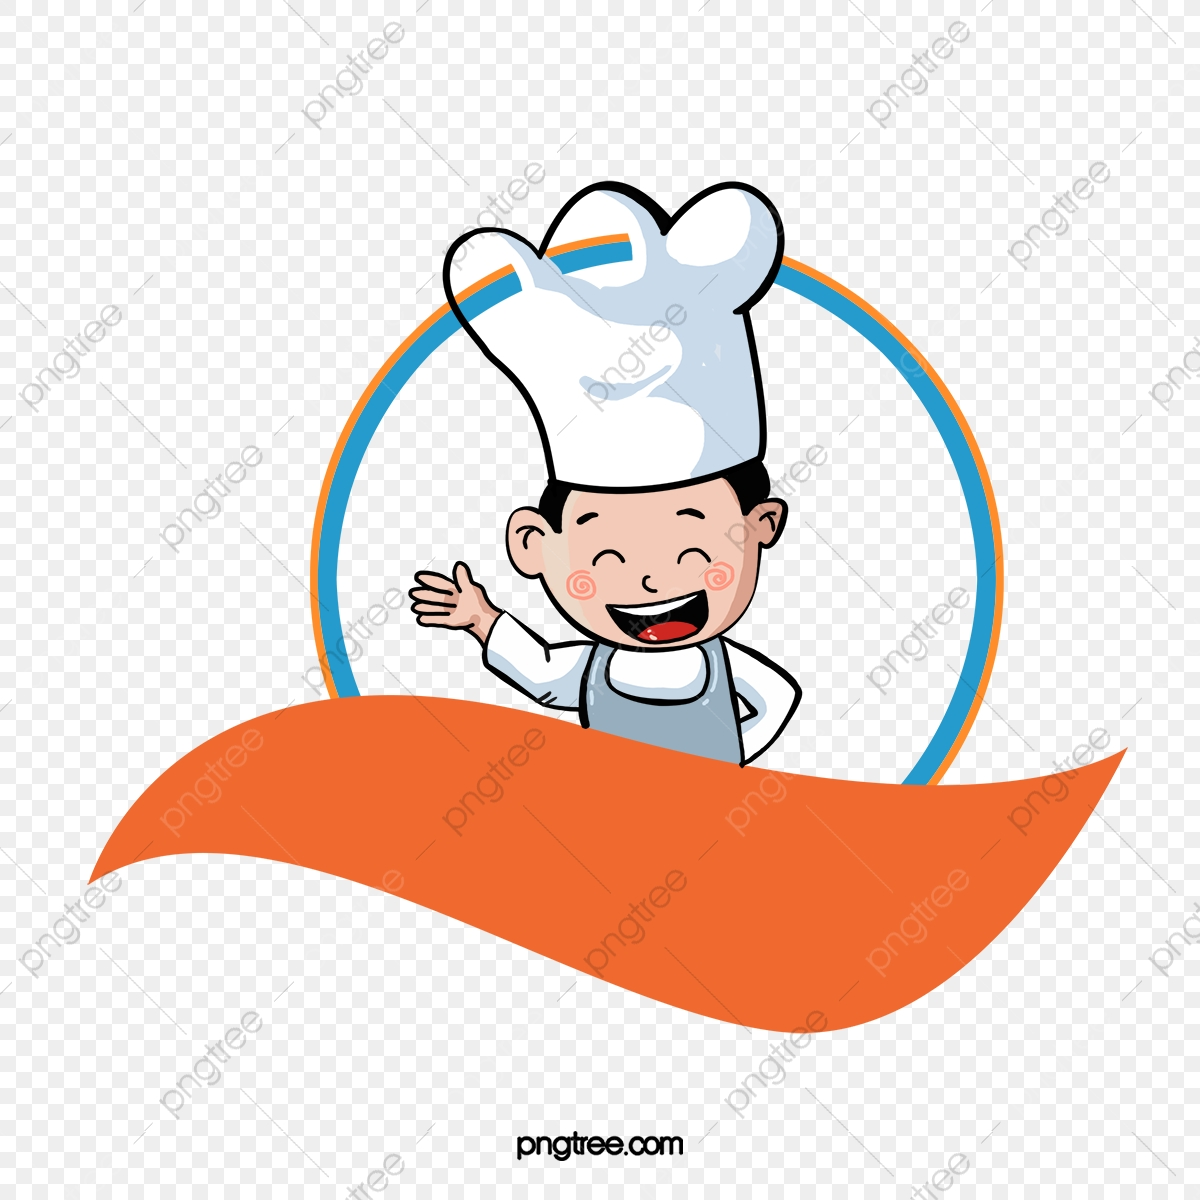 Chef Icon, Chef Clipart, Chef, Cartoon PNG Transparent Image and